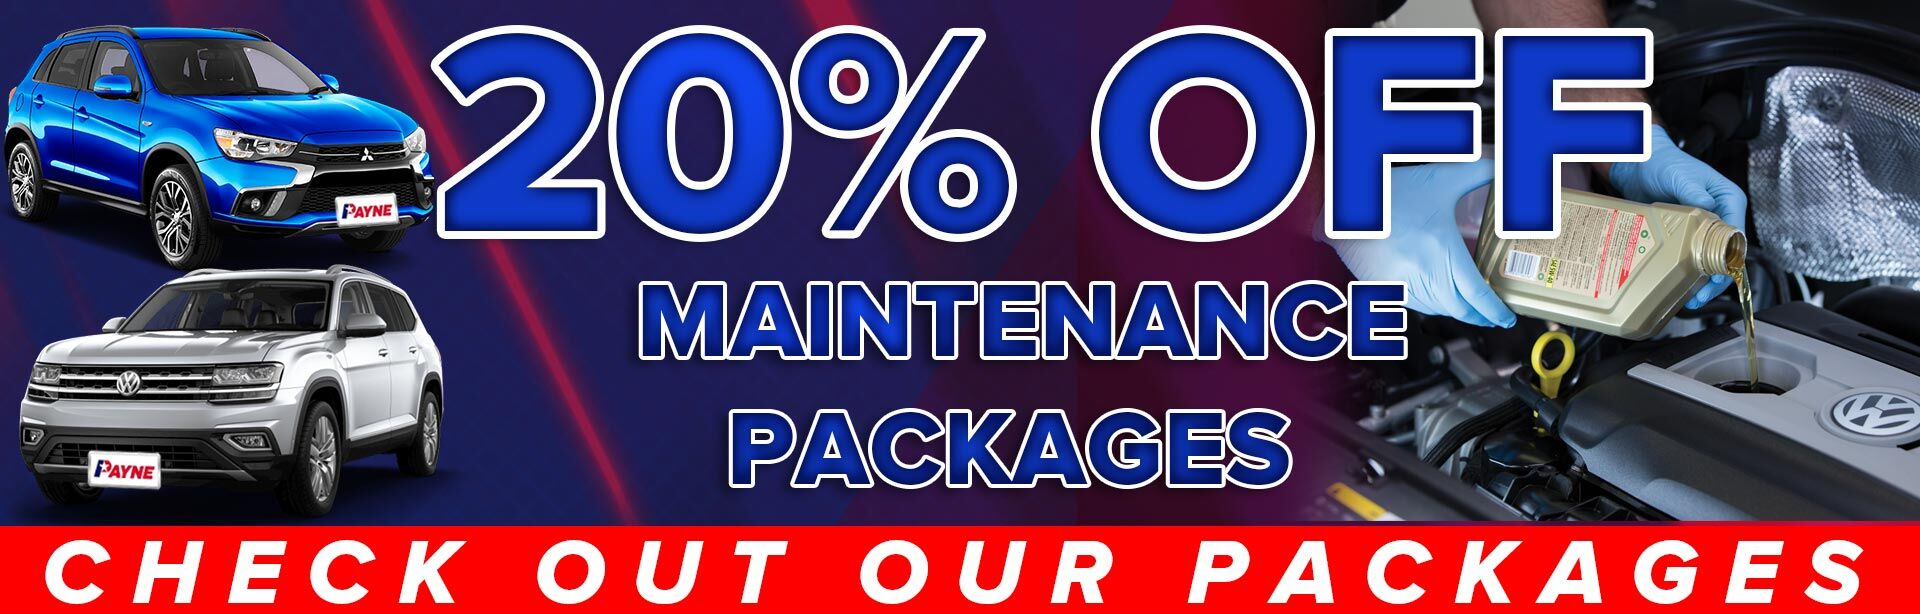 20% Off Maintenance Packages